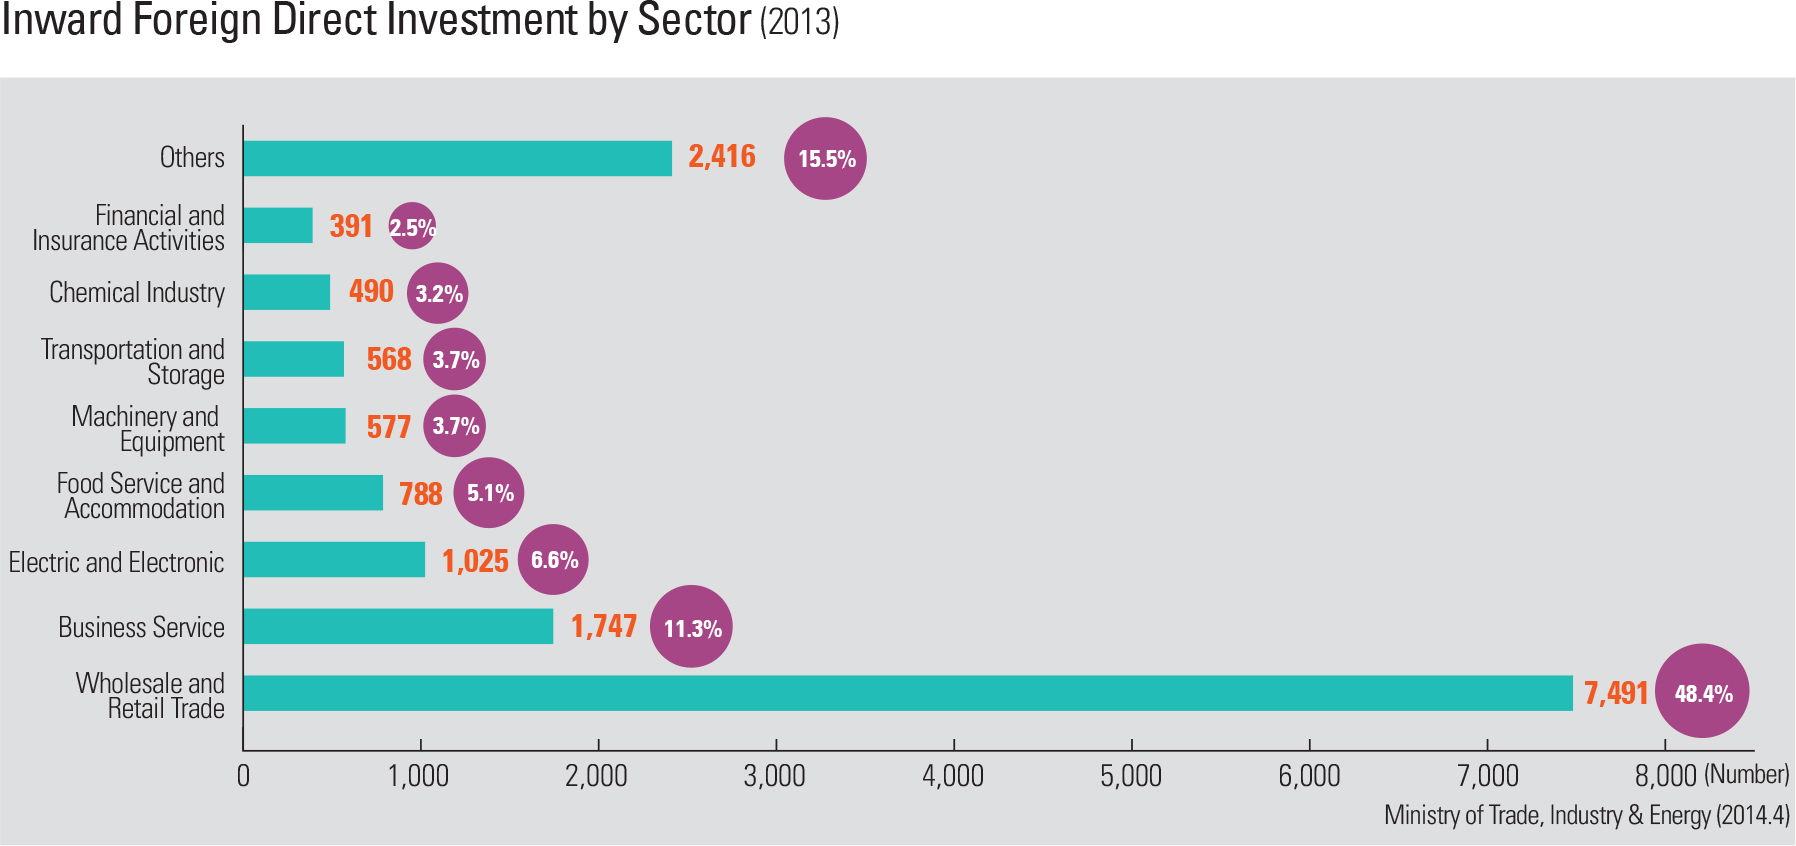 Inward Foreign Direct Investment by Sector